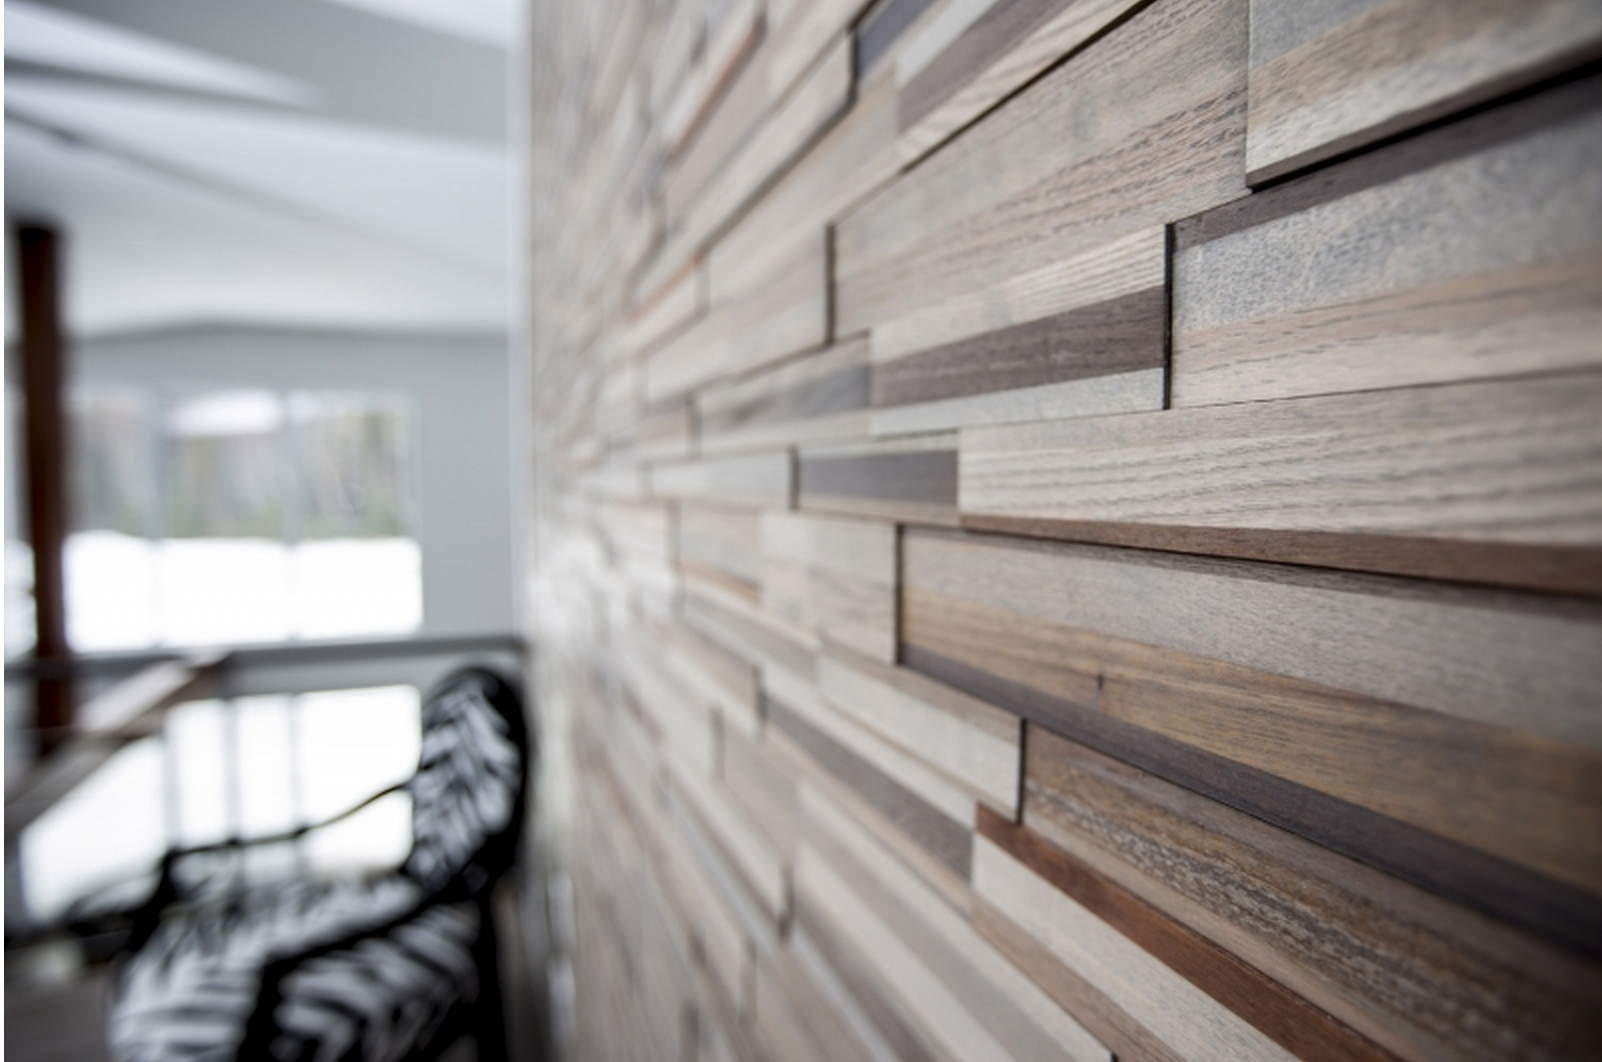 Add A Warm, Contemporary Look To Any Room With Easy Diy Multi Intended For Fashionable Wood Paneling Wall Accents (Gallery 2 of 15)